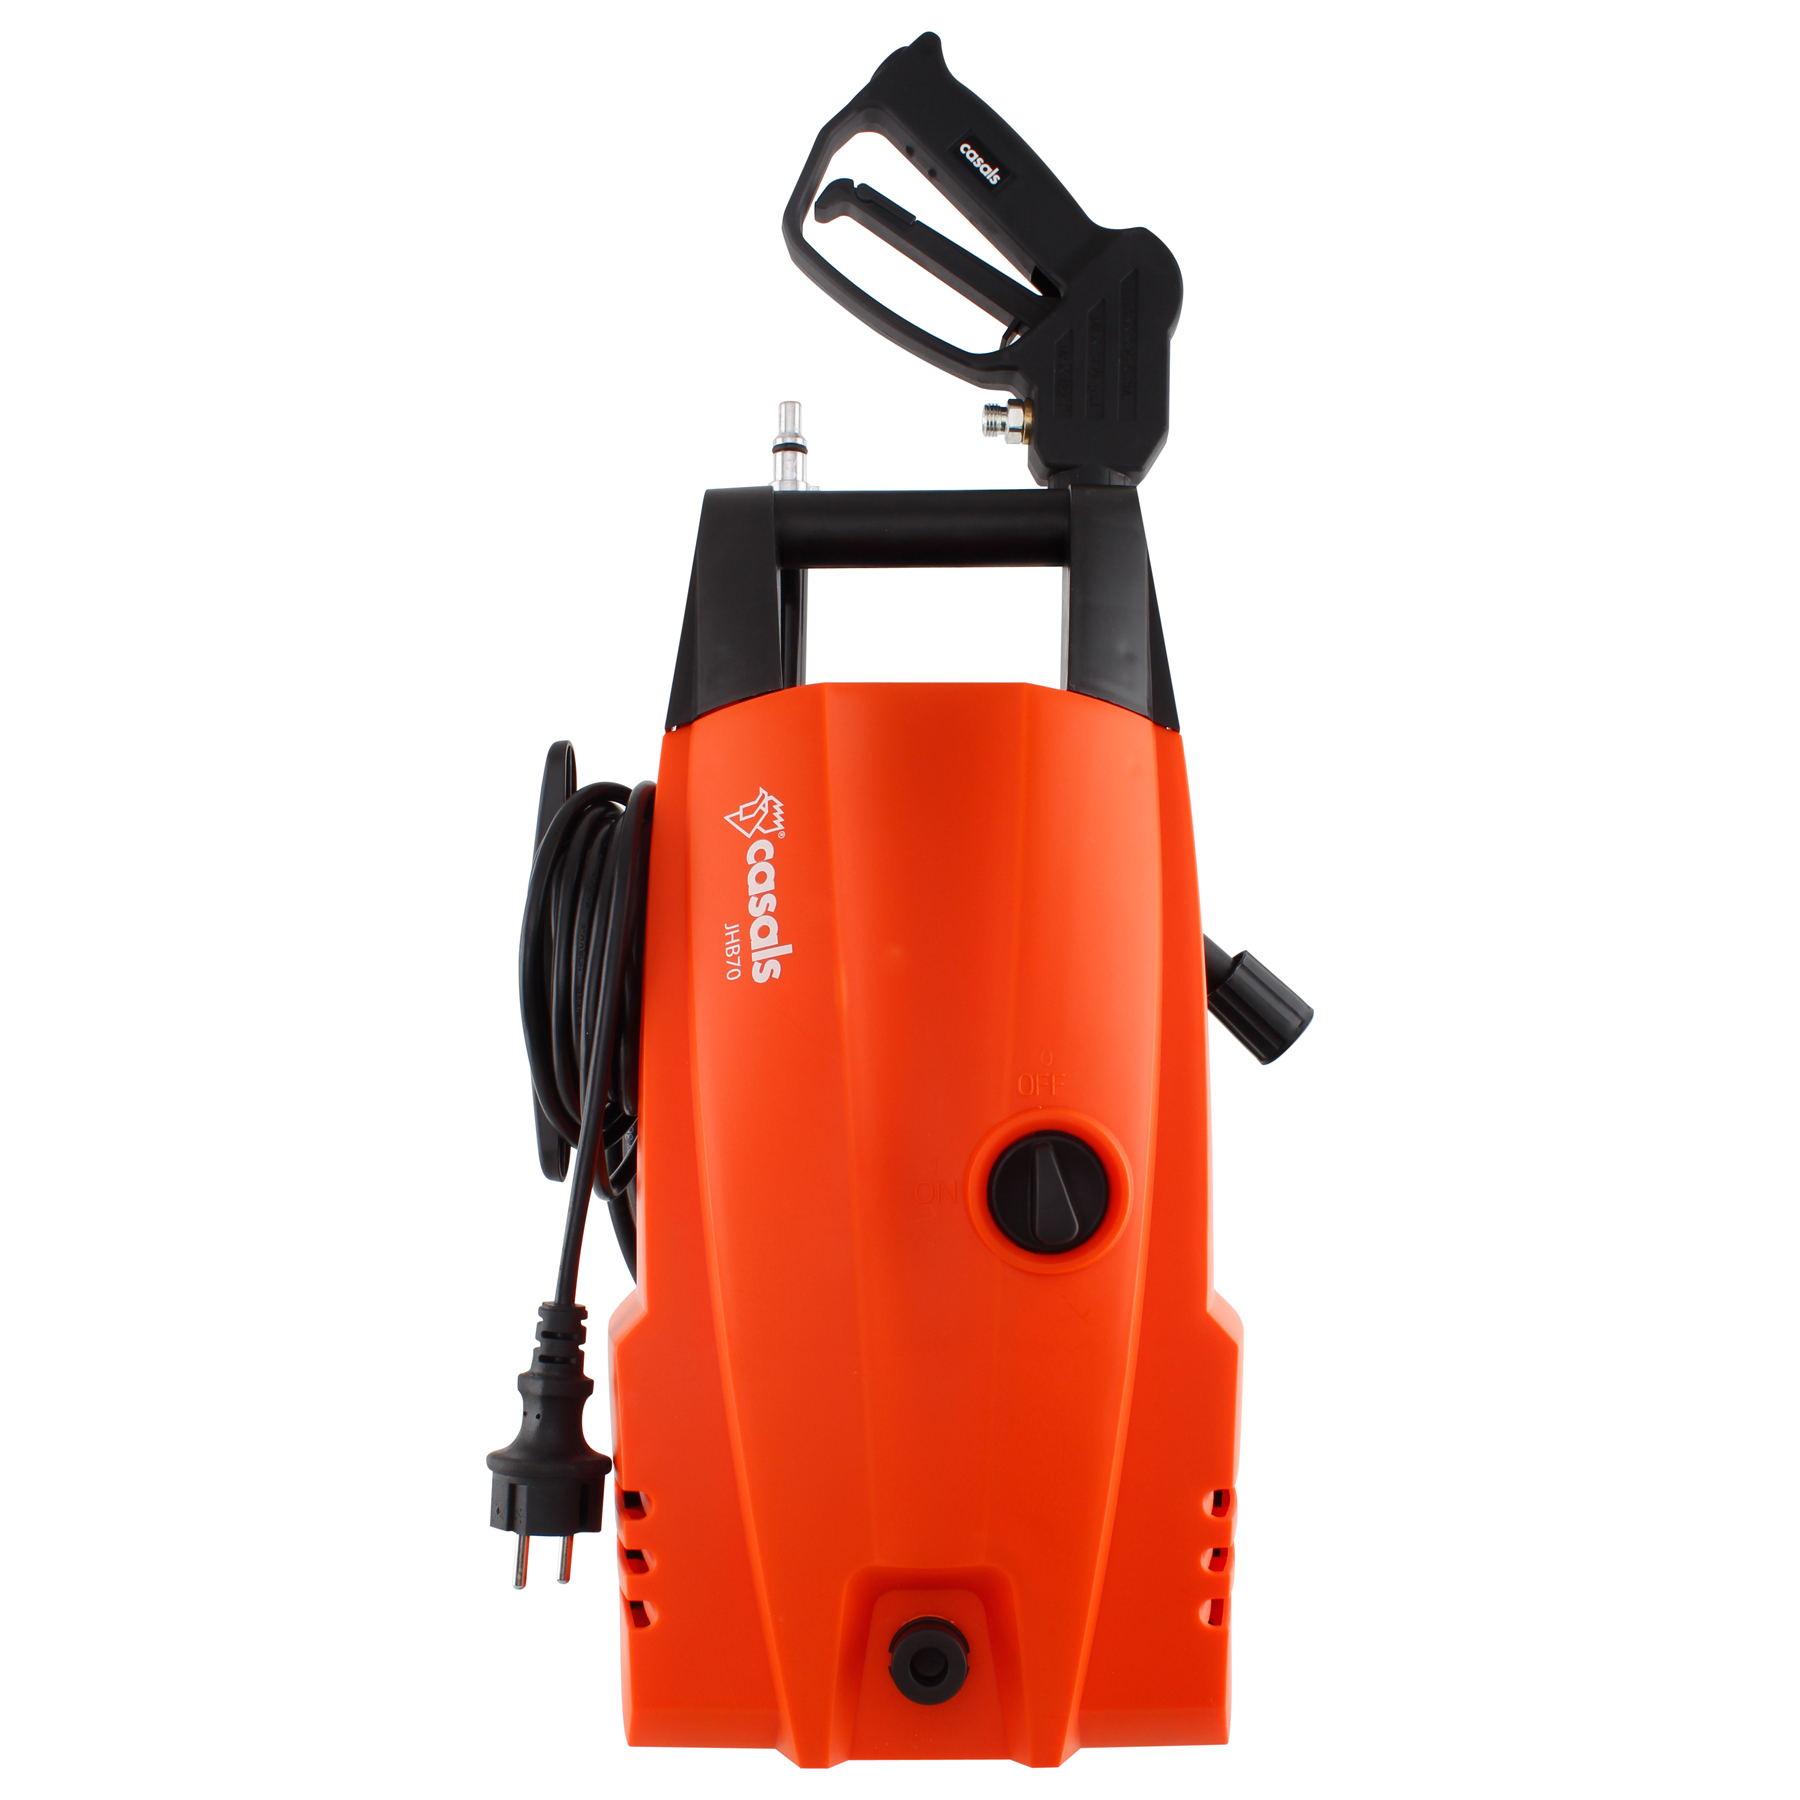 High Pressure Washer With Attachments 105Bar